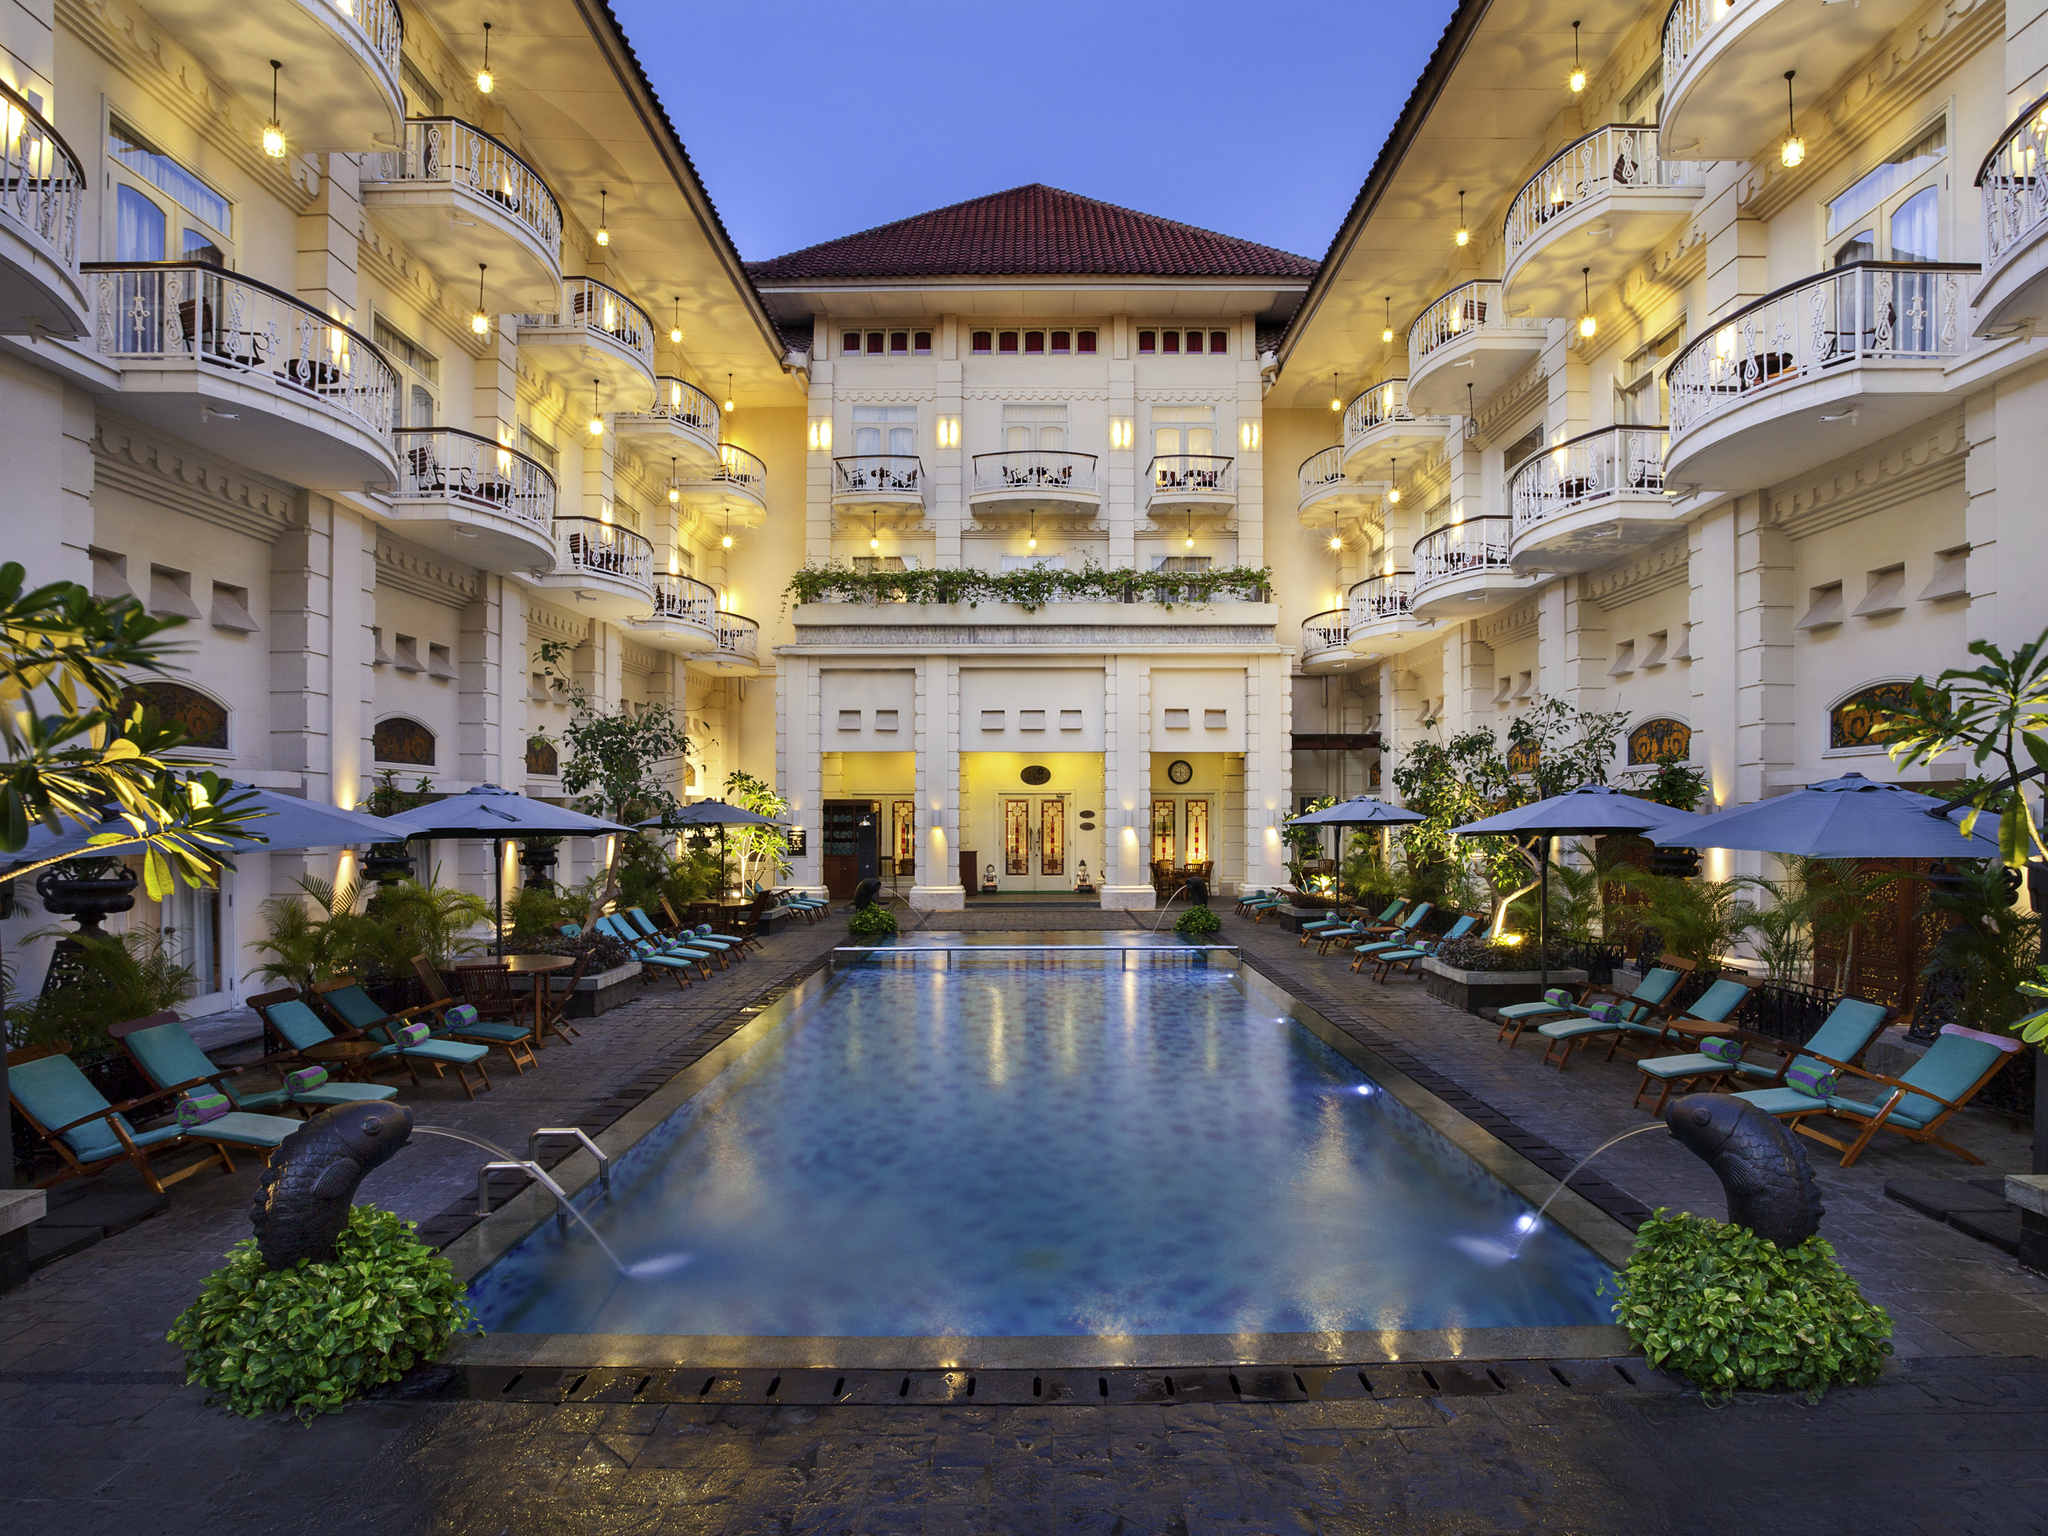 5-star hotel in yogyakarta - the phoenix hotel - accorhotels